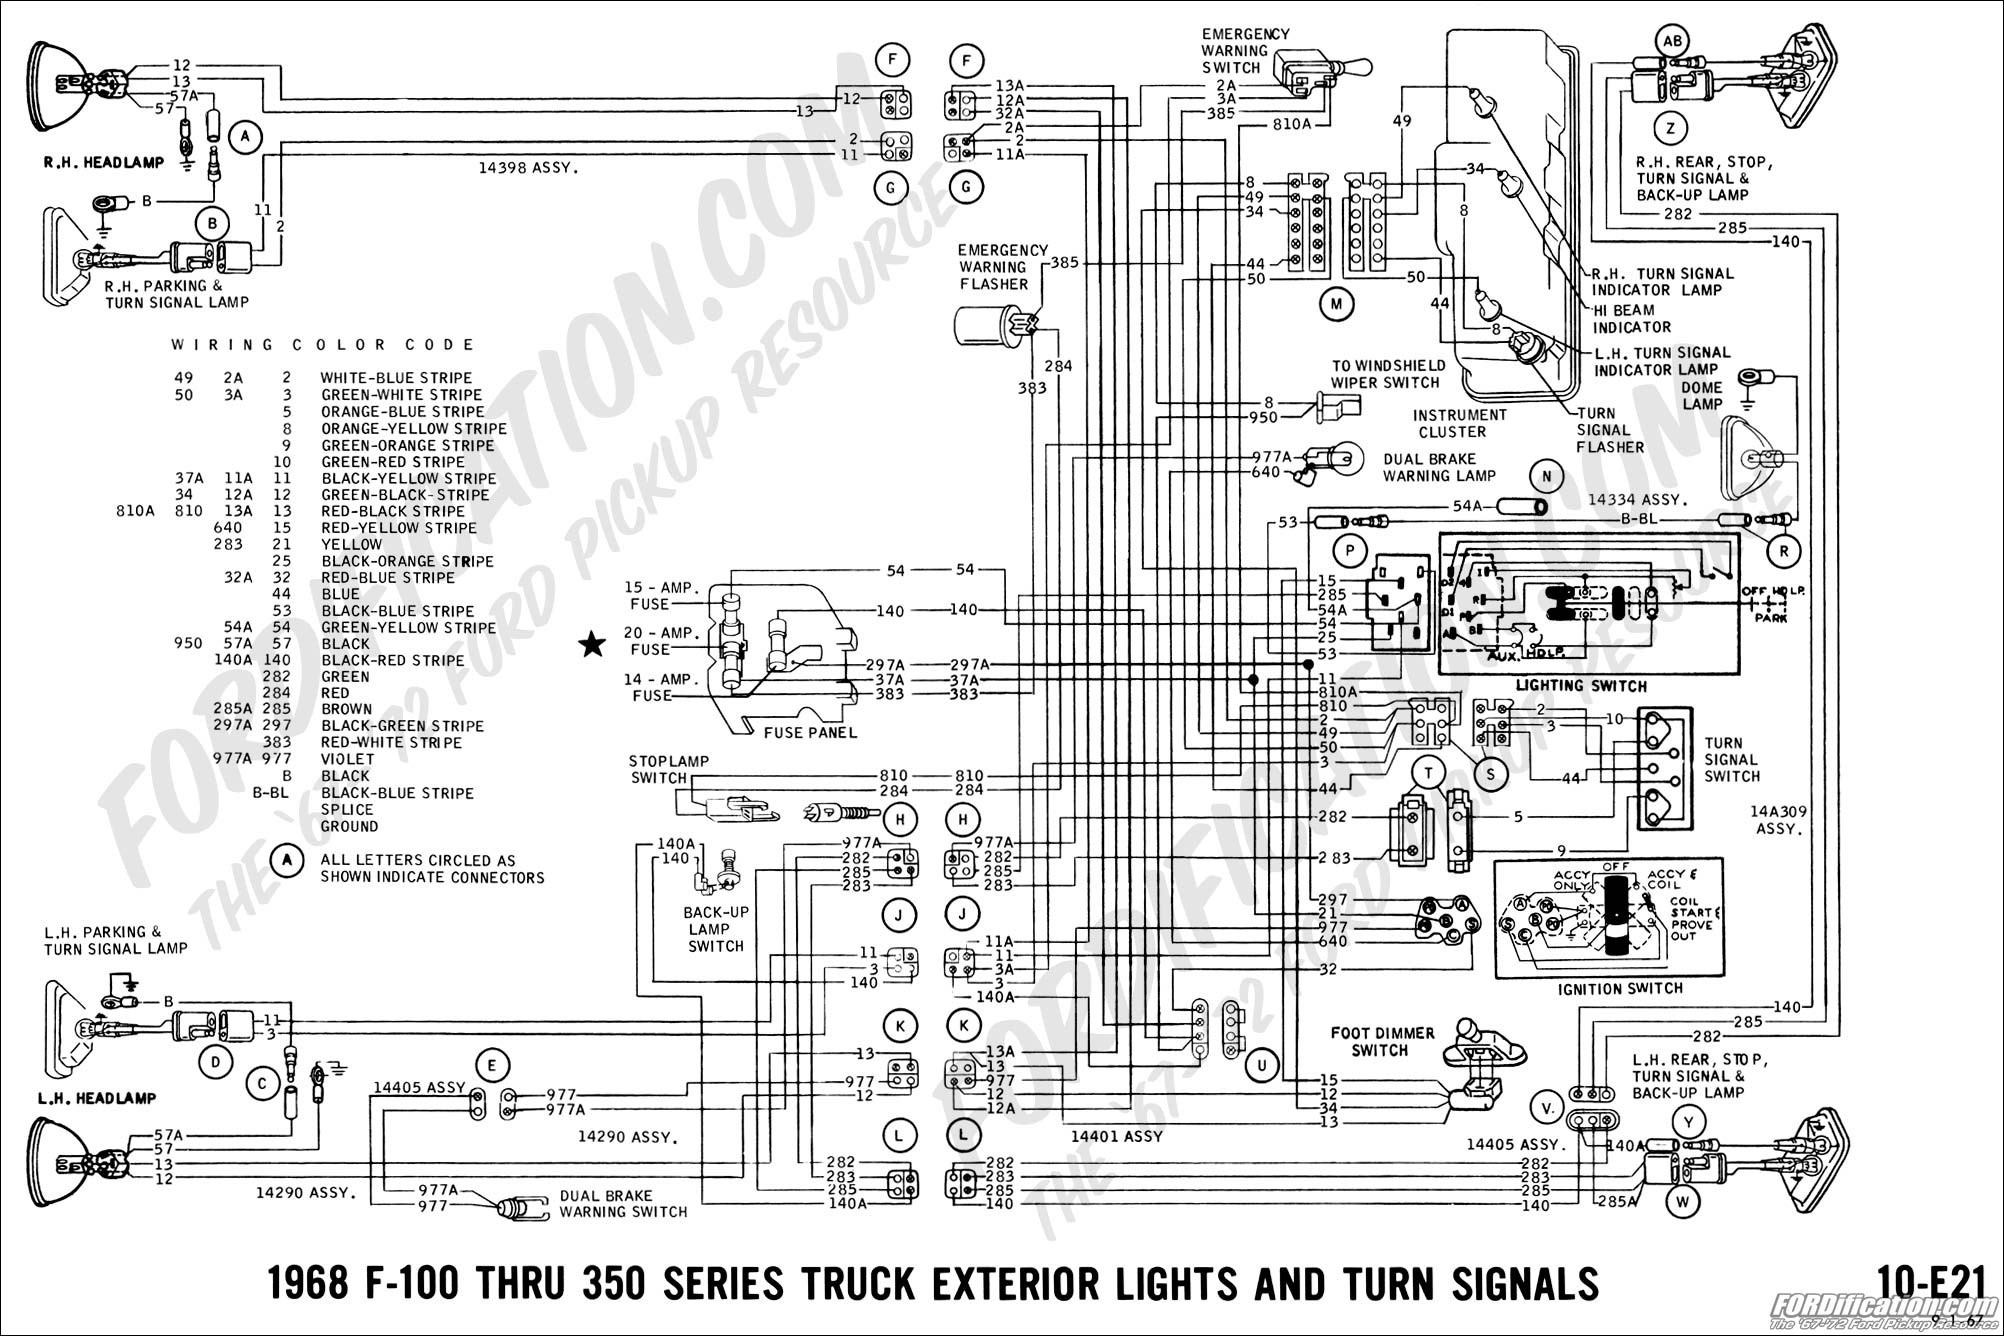 turn signal circuit diagram ford truck technical drawings and schematics section h wiring of turn signal circuit diagram